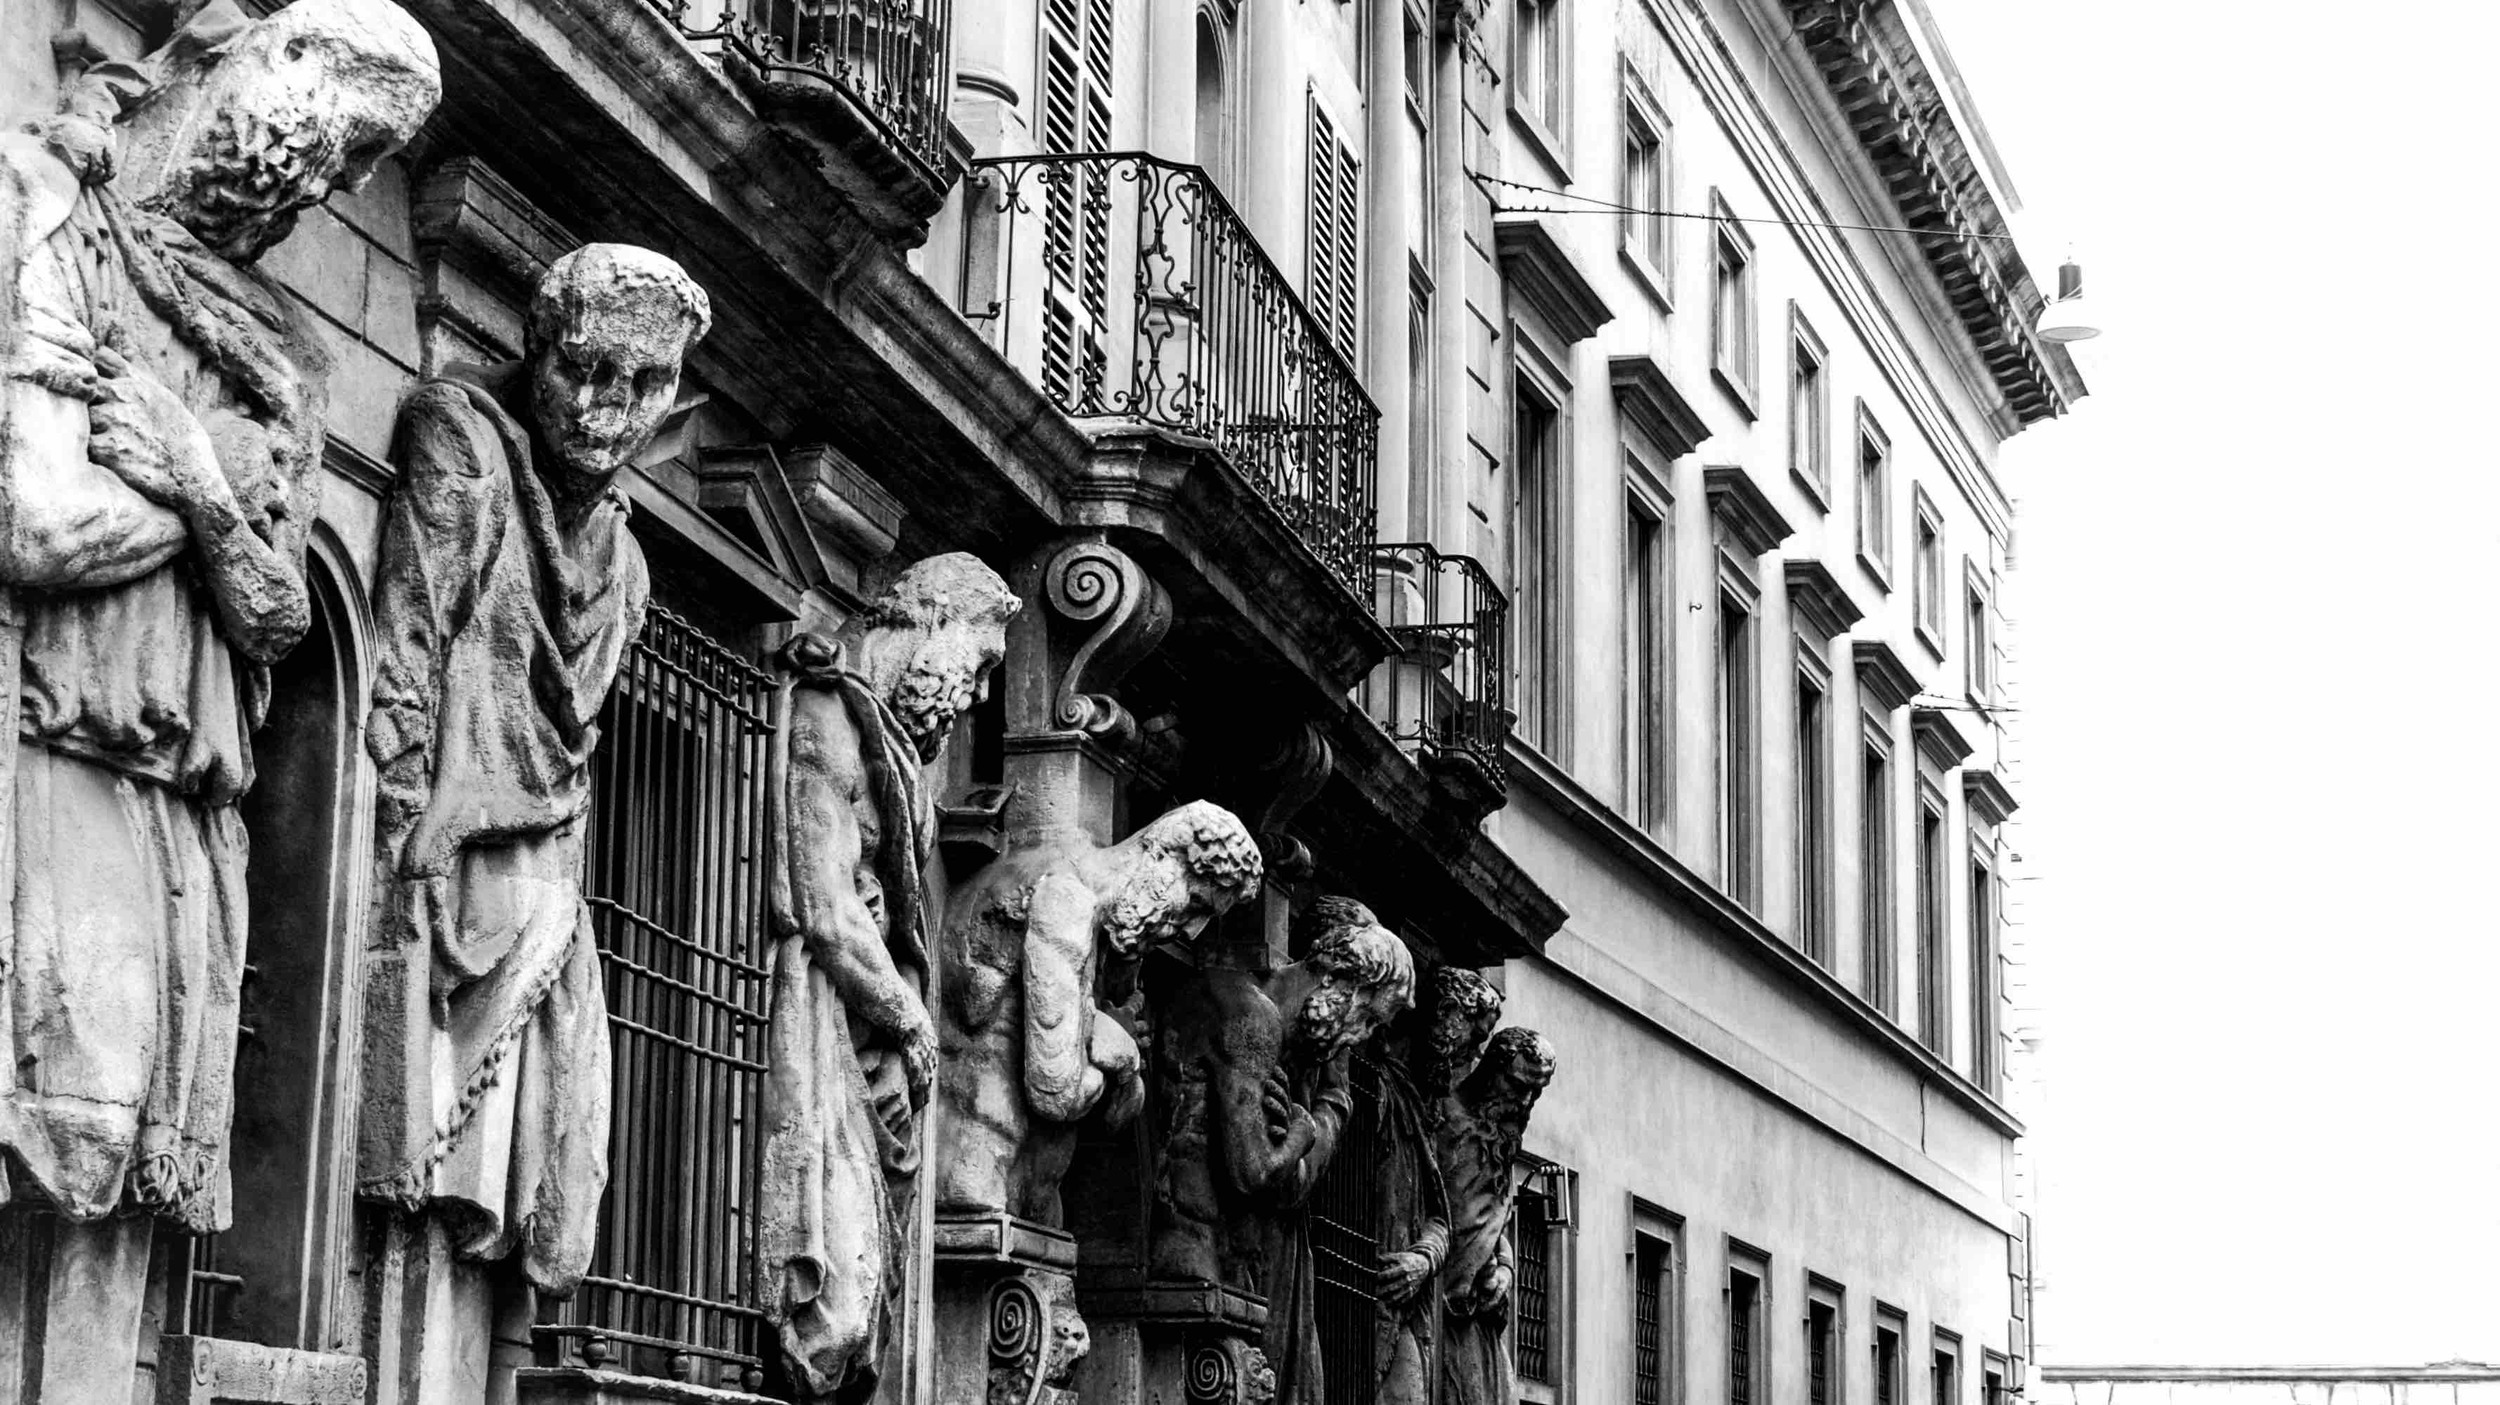 There are so many beautiful old buildings in Milan. Every corner isa possibleshooting site. No wonder this city is a magnet for many artists, designers, models, and photographers.